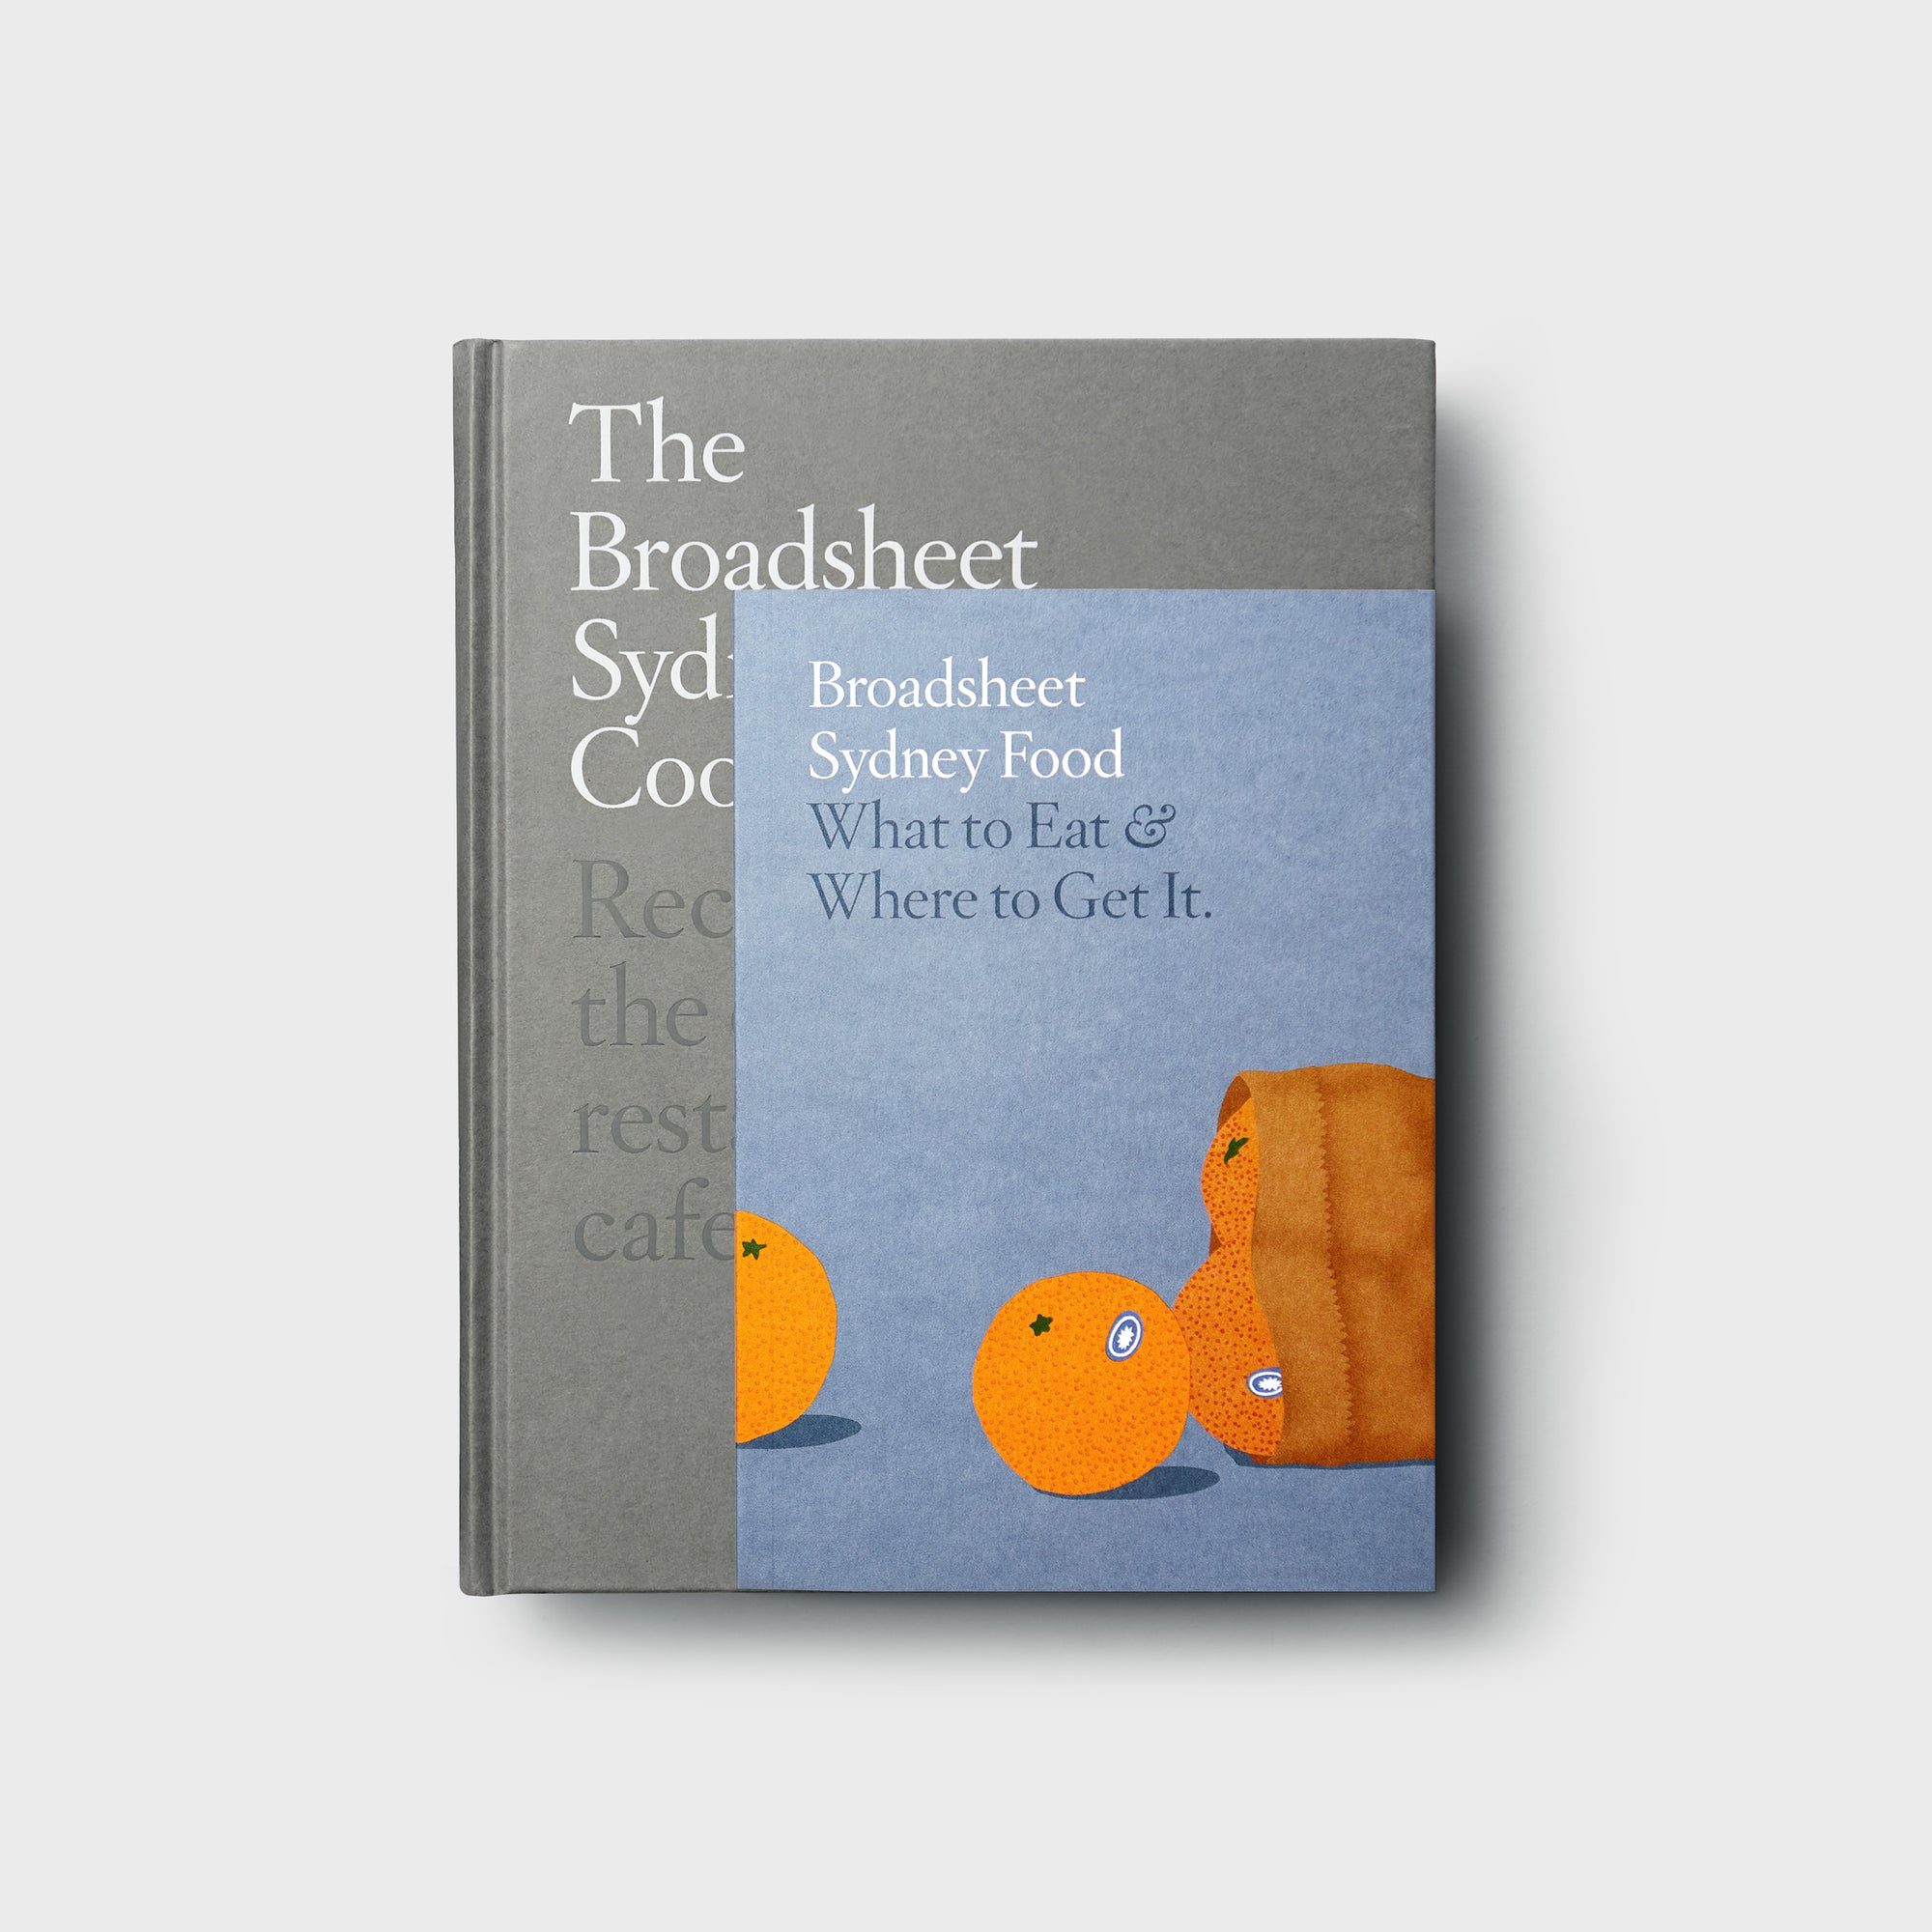 Sydney Food and Sydney Cookbook Set